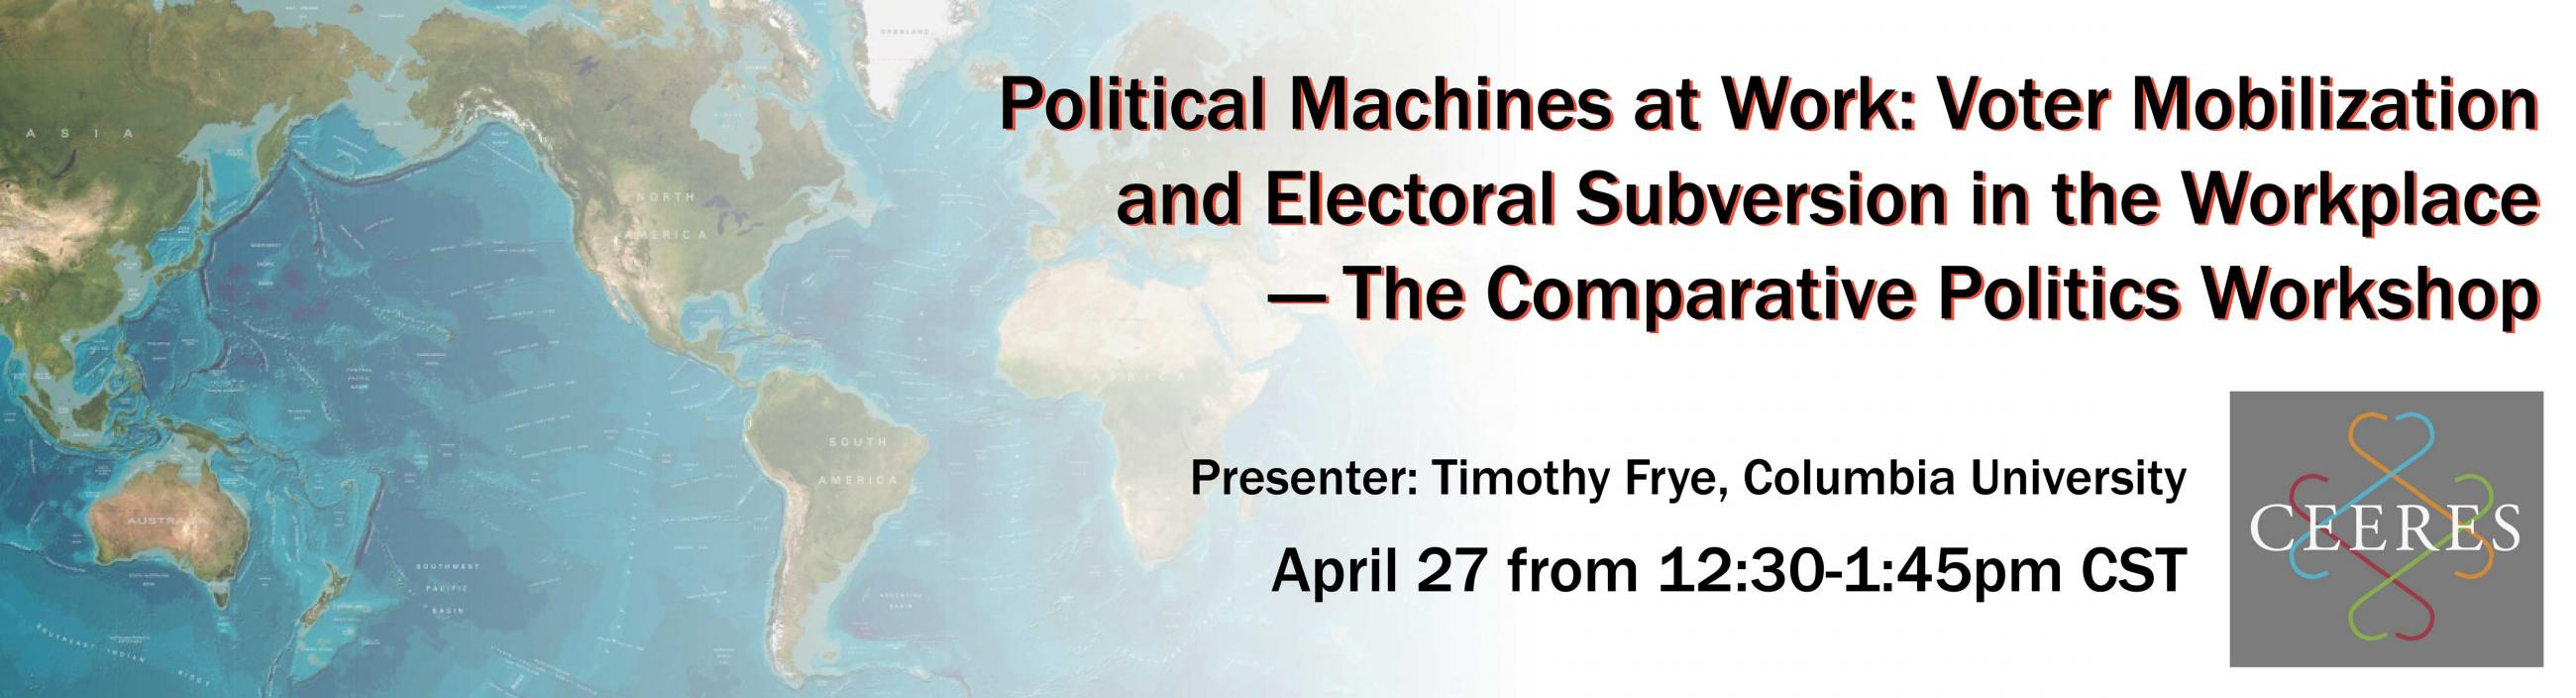 Political Machines at Work: Voter Mobilization and Electoral Subversion in the Workplace — The Comparative Politics Workshop